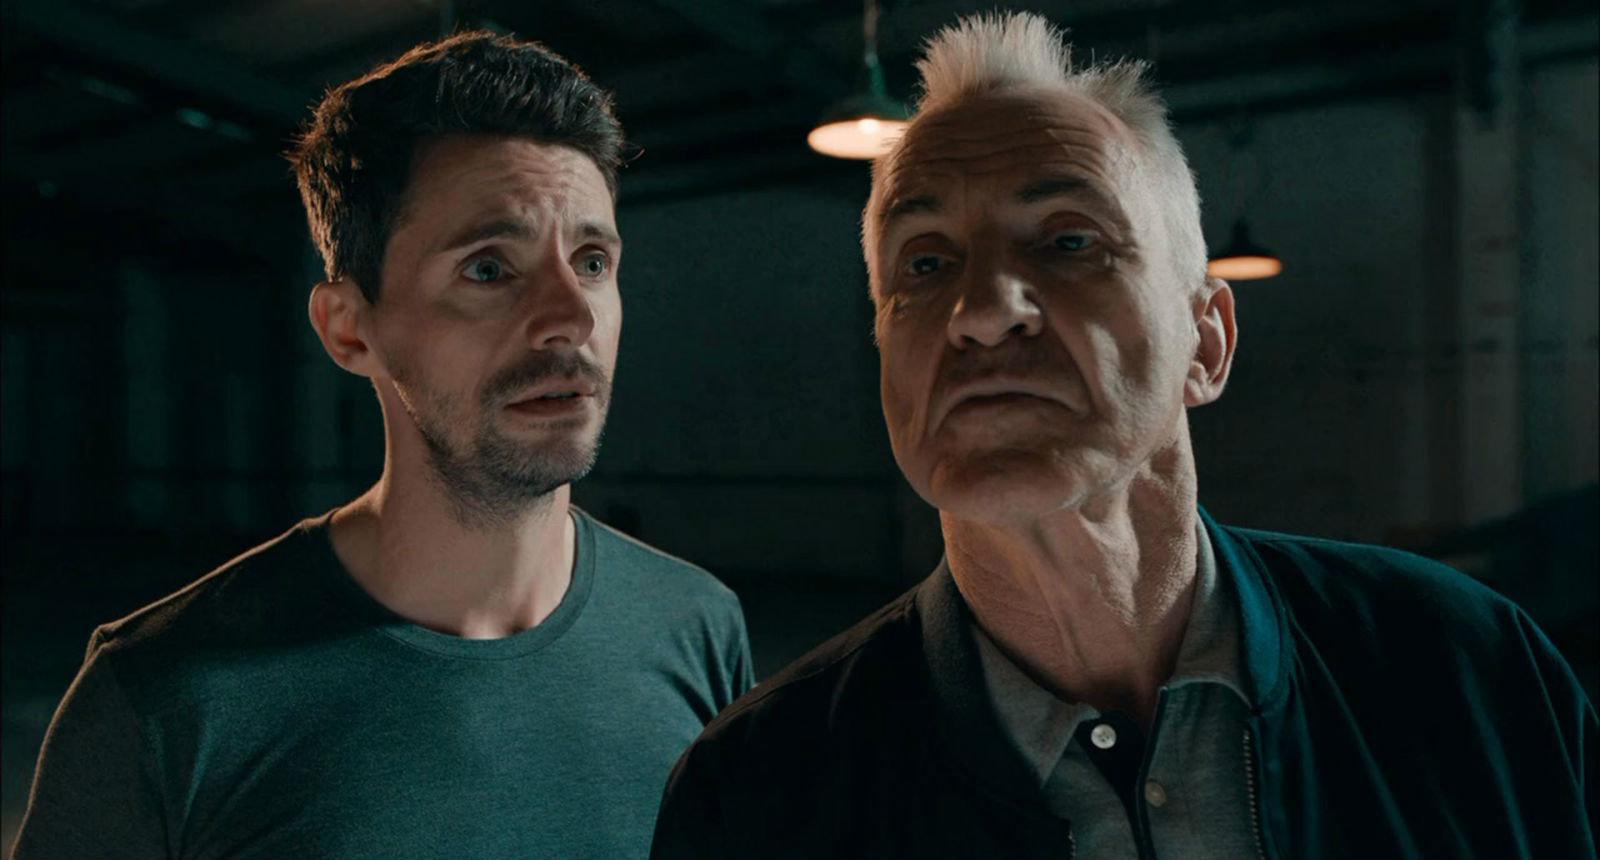 Matthew Goode and Larry Lamb in The Hatton Garden Job (2017)